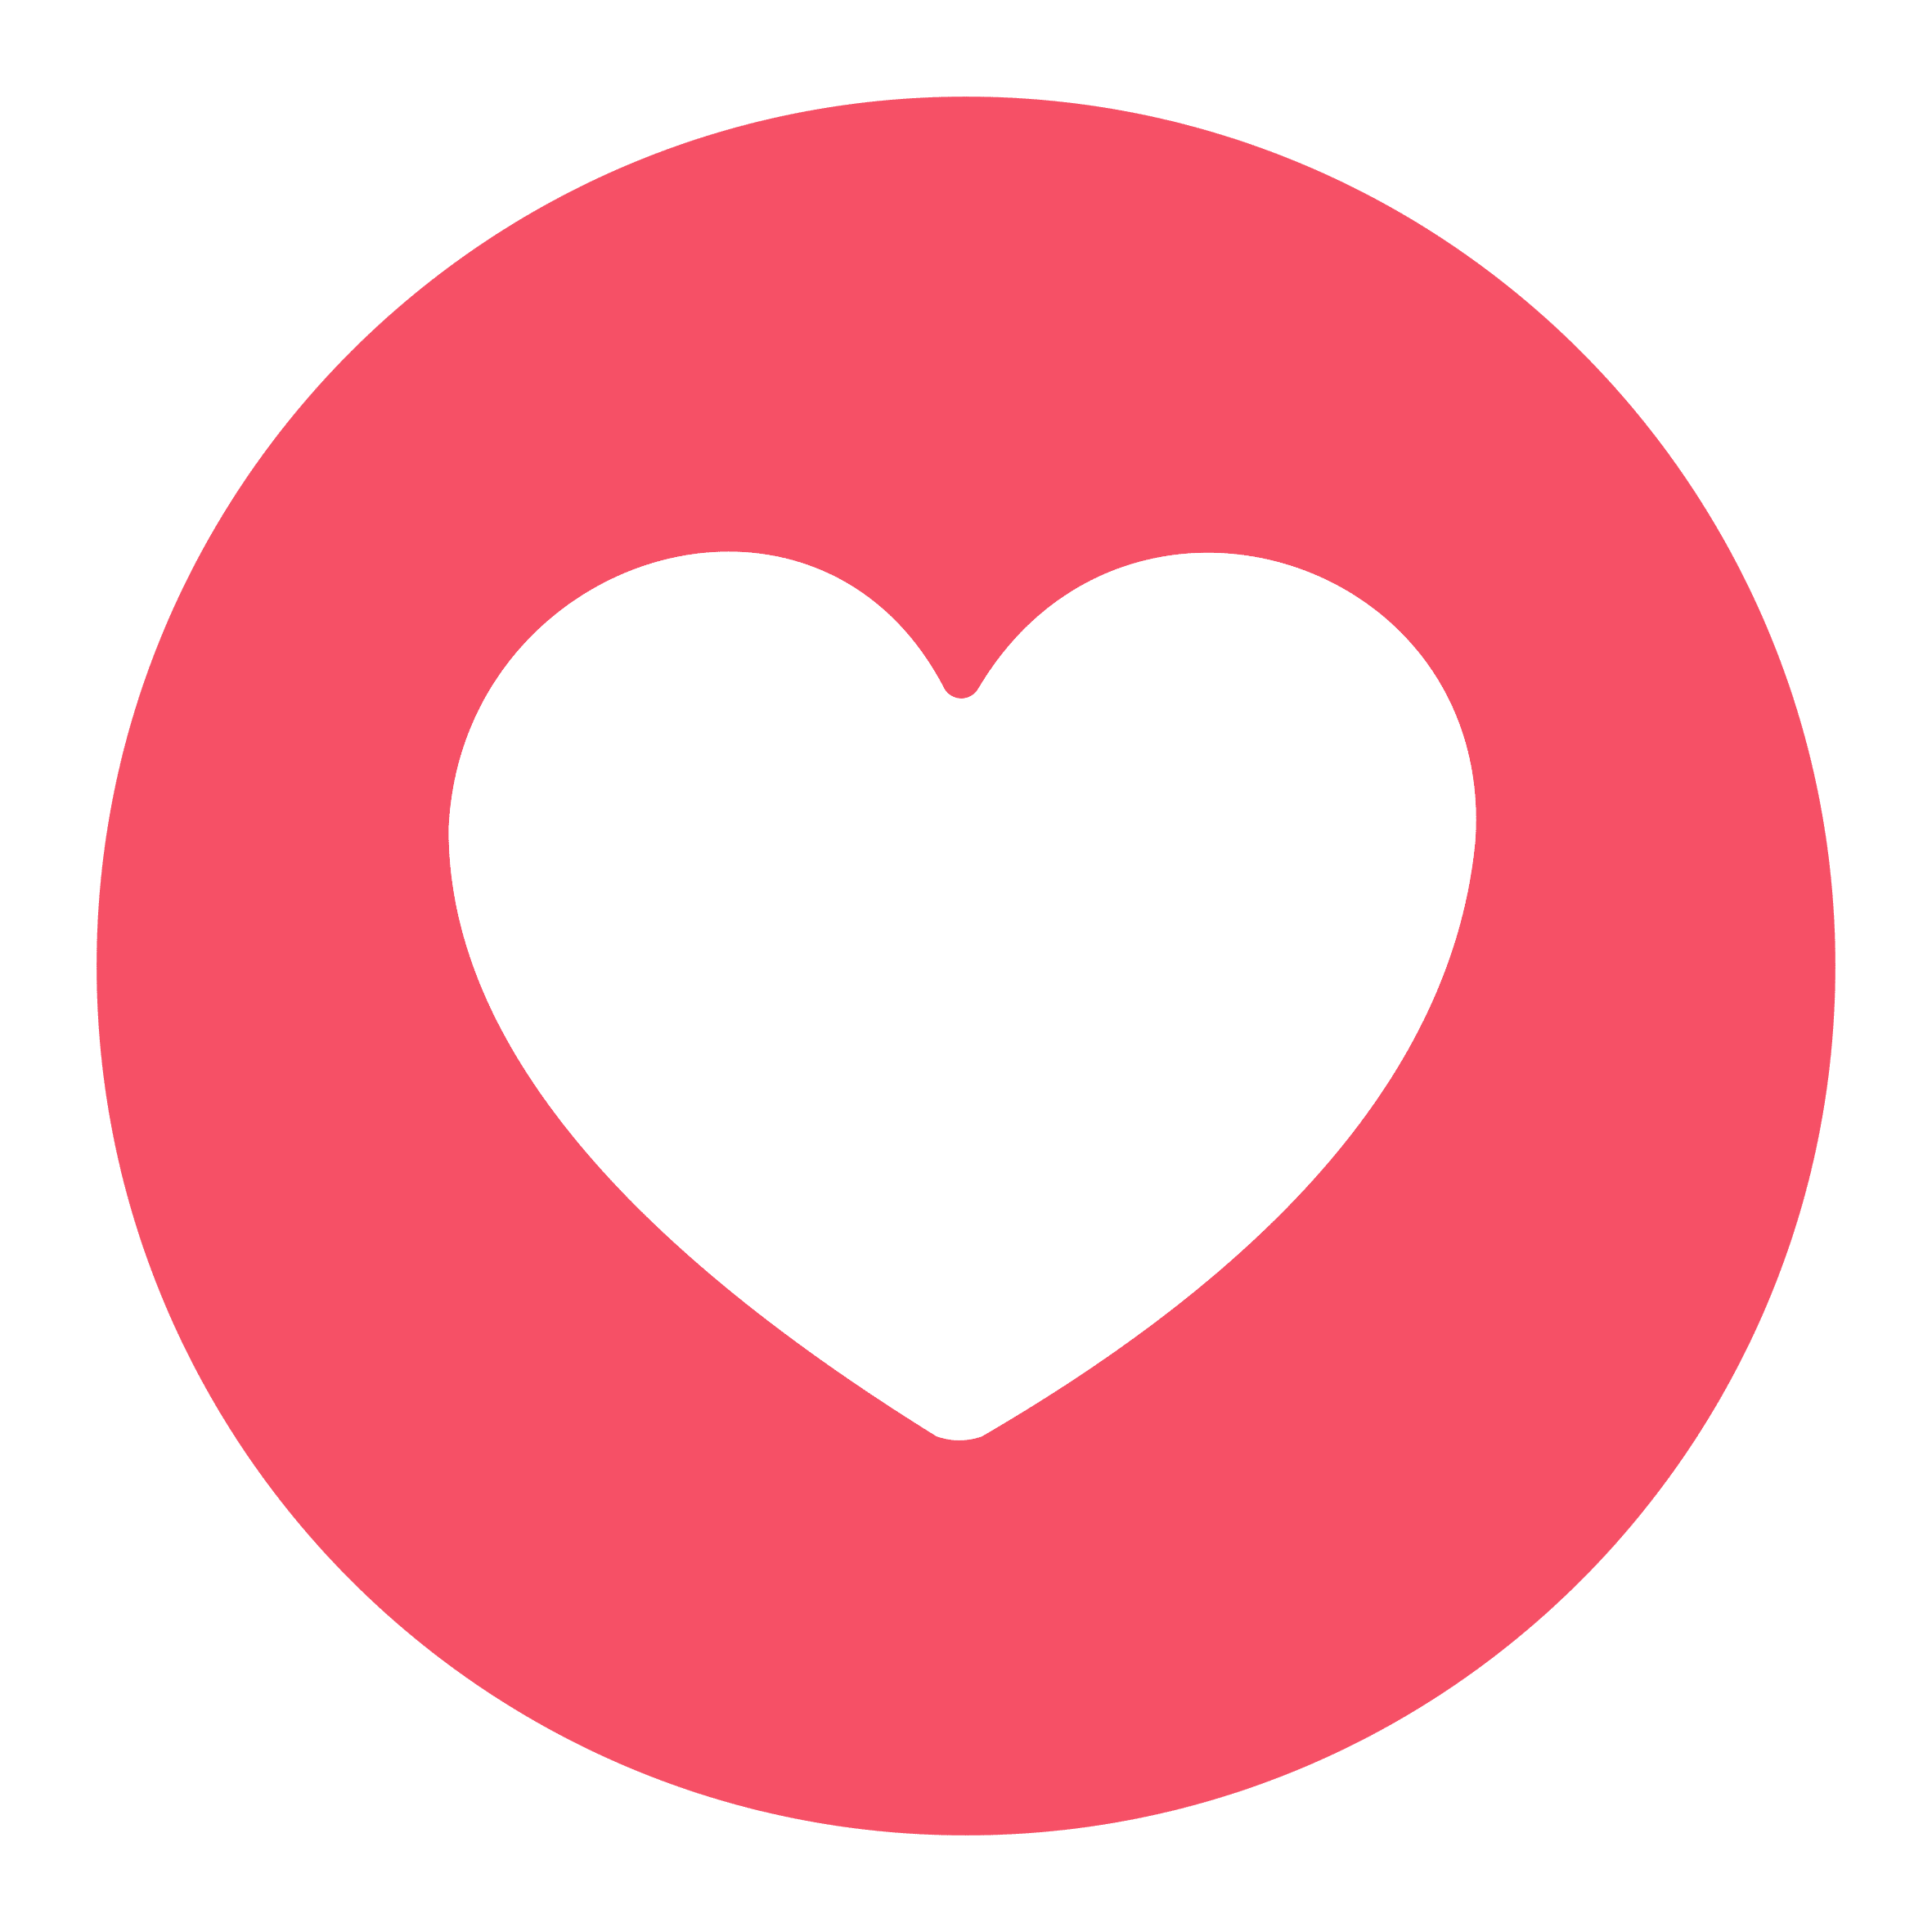 Facebook circle png. Heart love